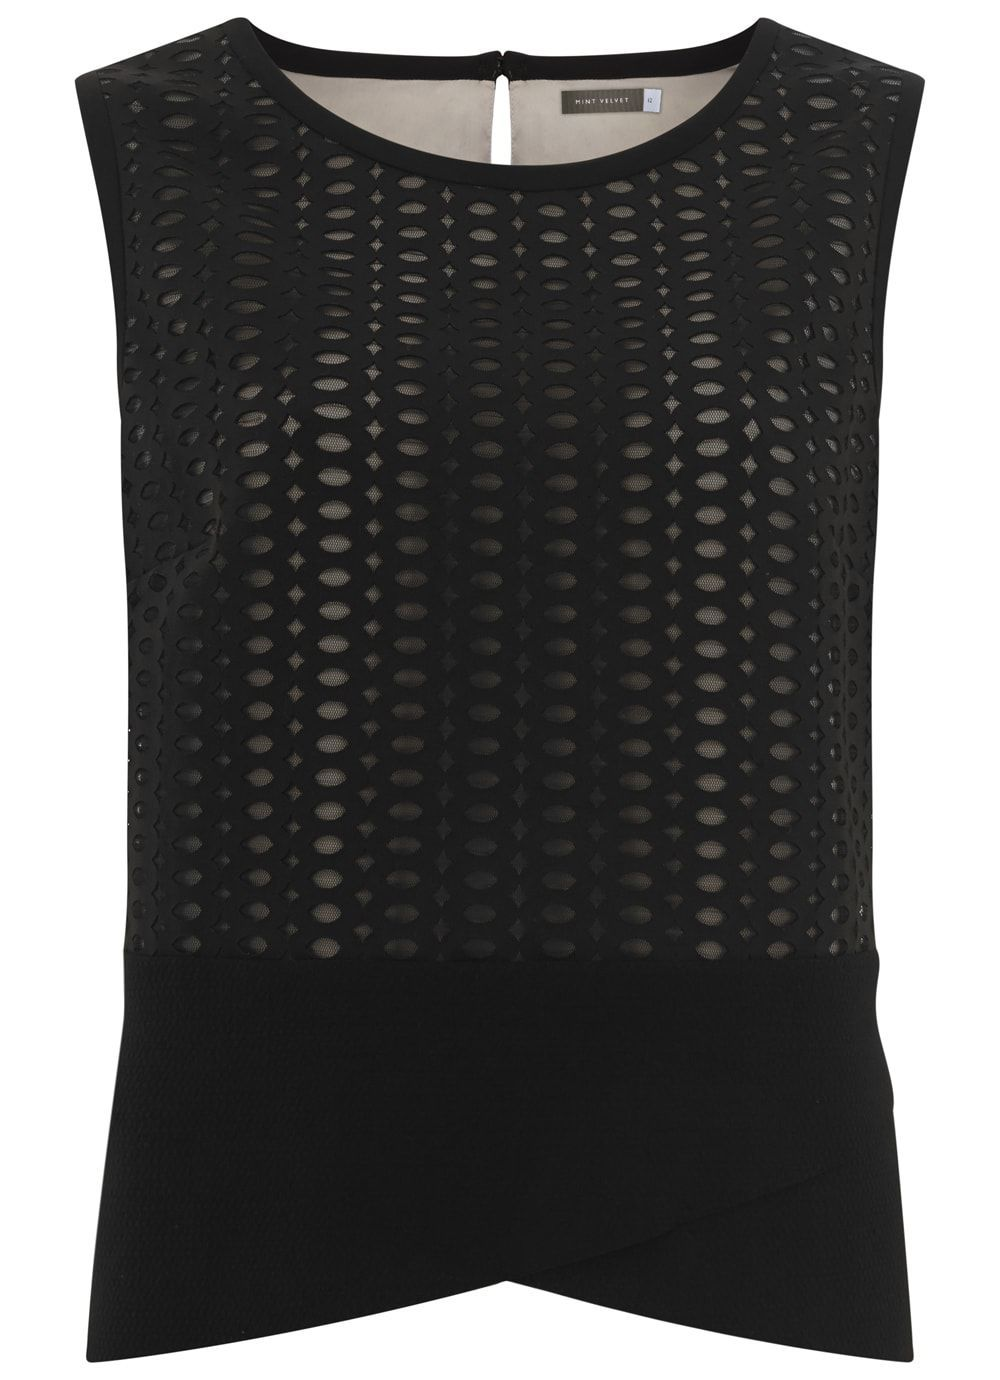 Black Mesh Shell Top, Black - neckline: round neck; sleeve style: sleeveless; predominant colour: black; occasions: casual, creative work; length: standard; style: top; fibres: polyester/polyamide - mix; fit: body skimming; sleeve length: sleeveless; pattern type: fabric; pattern: patterned/print; texture group: jersey - stretchy/drapey; season: s/s 2016; wardrobe: highlight